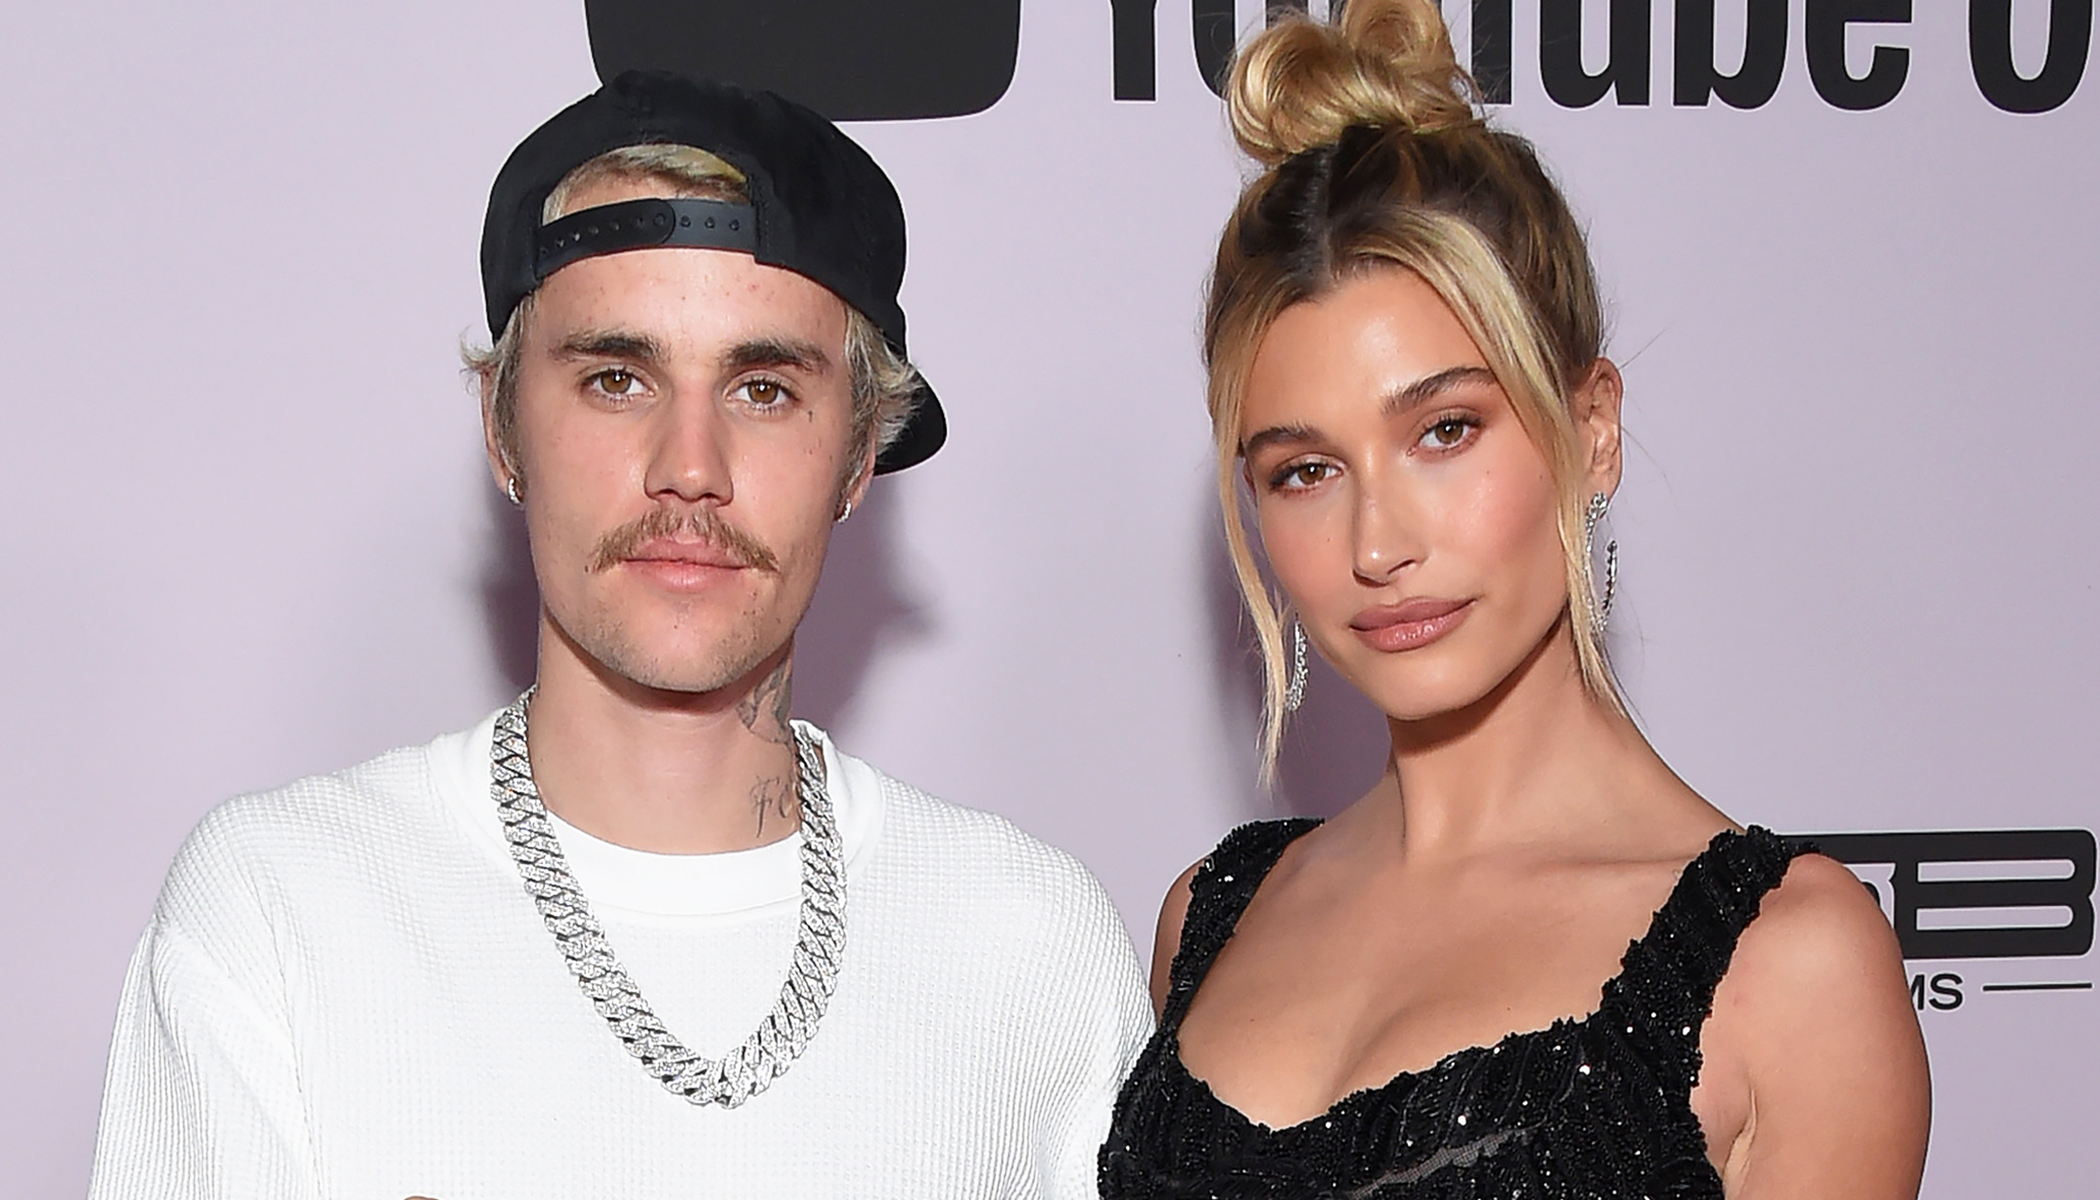 Justin Bieber gets baptized with wife Hailey, calls it 'One of most special moments of my life'